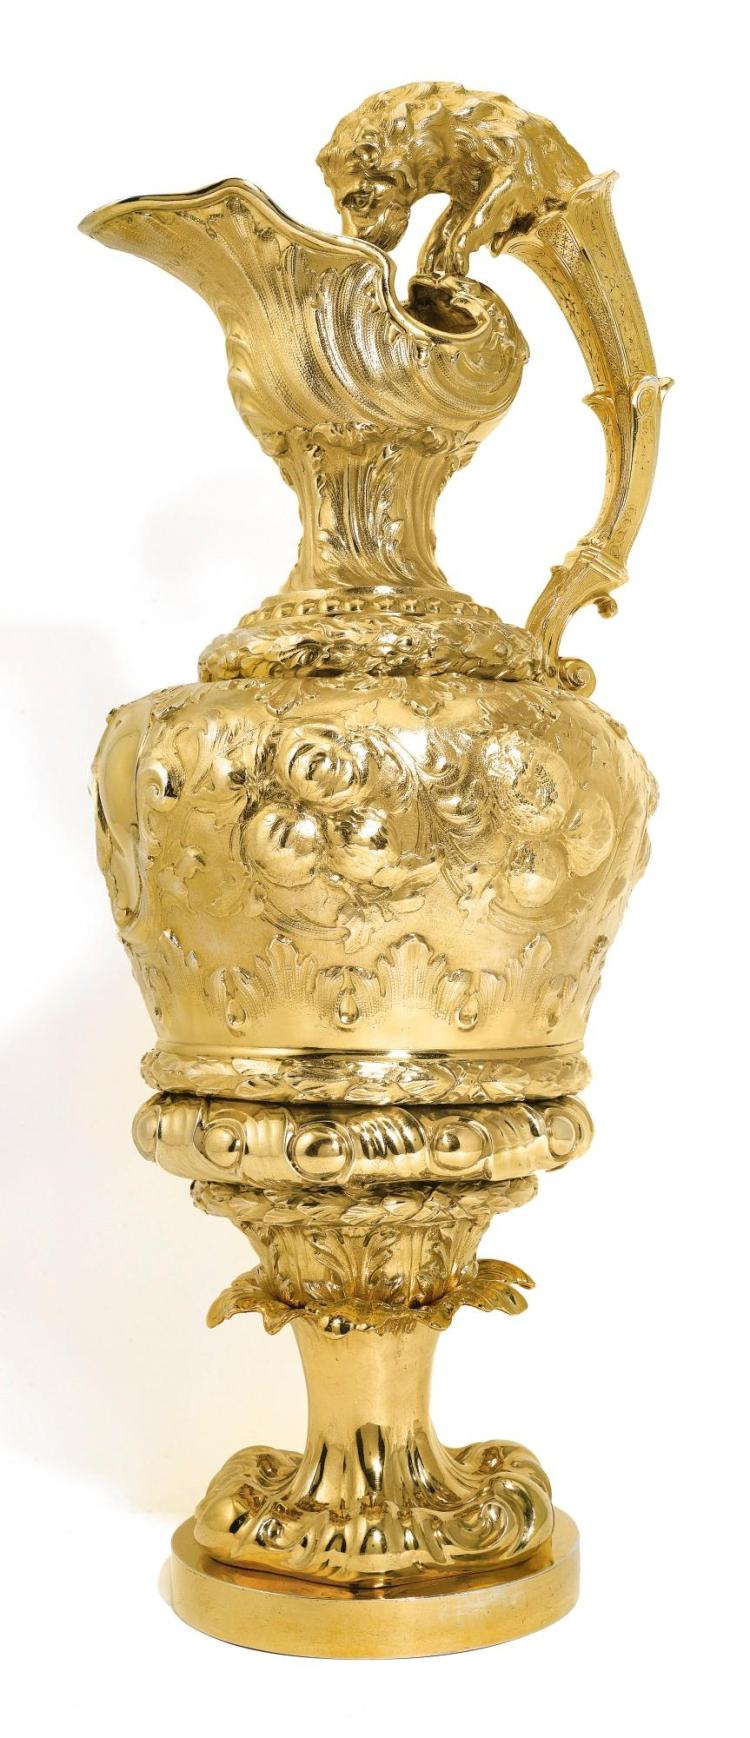 A LARGE VICTORIAN SILVER-GILT EWER, C. T. & G. FOX, LONDON, 1845, PROBABLY RETAILED BY LAMBERT & RAWLINGS OF COVENTRY STREET |